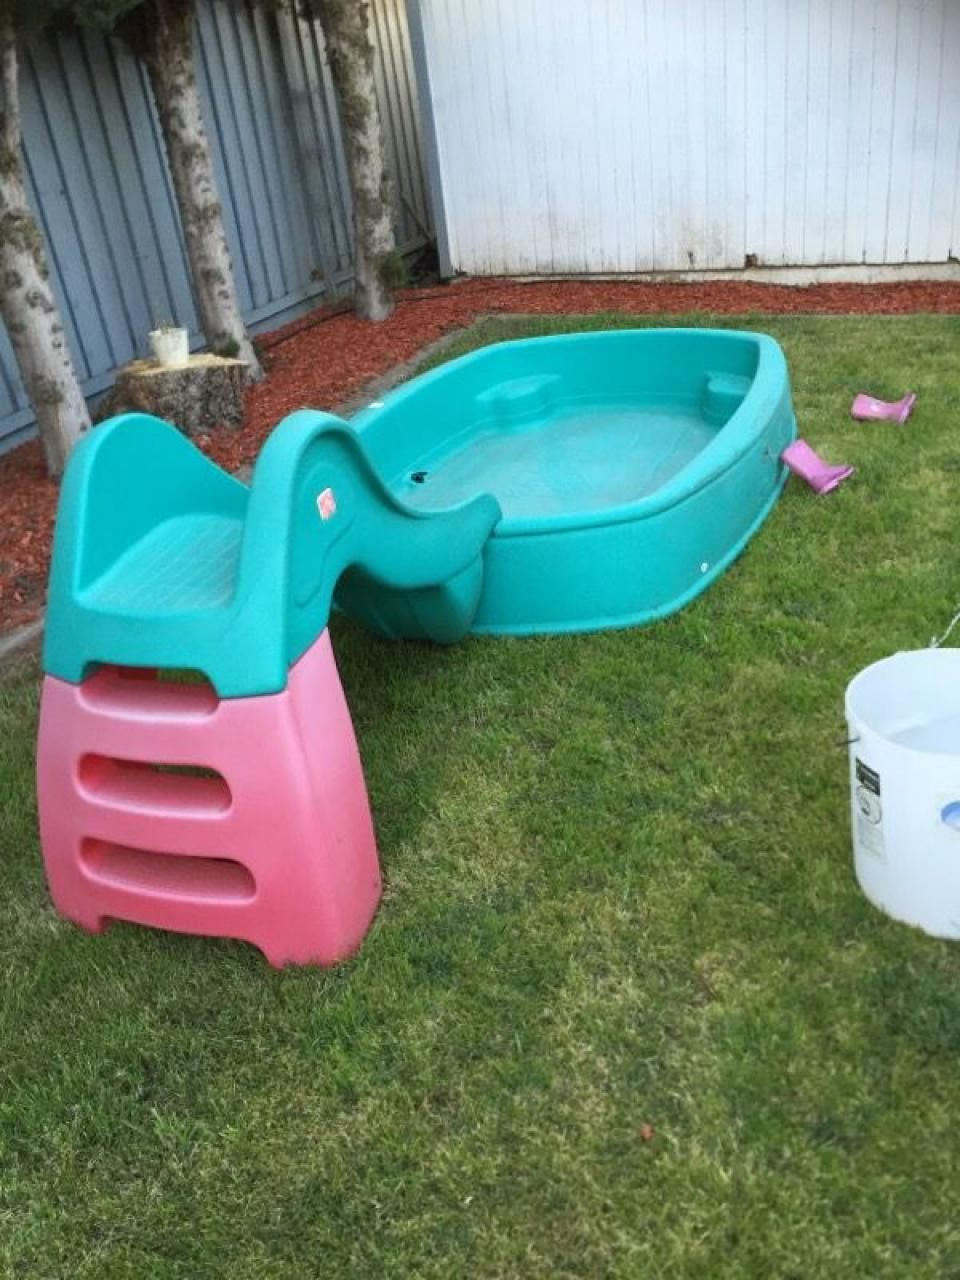 Cheap Eclectic Decor Saleprice 15 Plastic Kids Pool Plastic